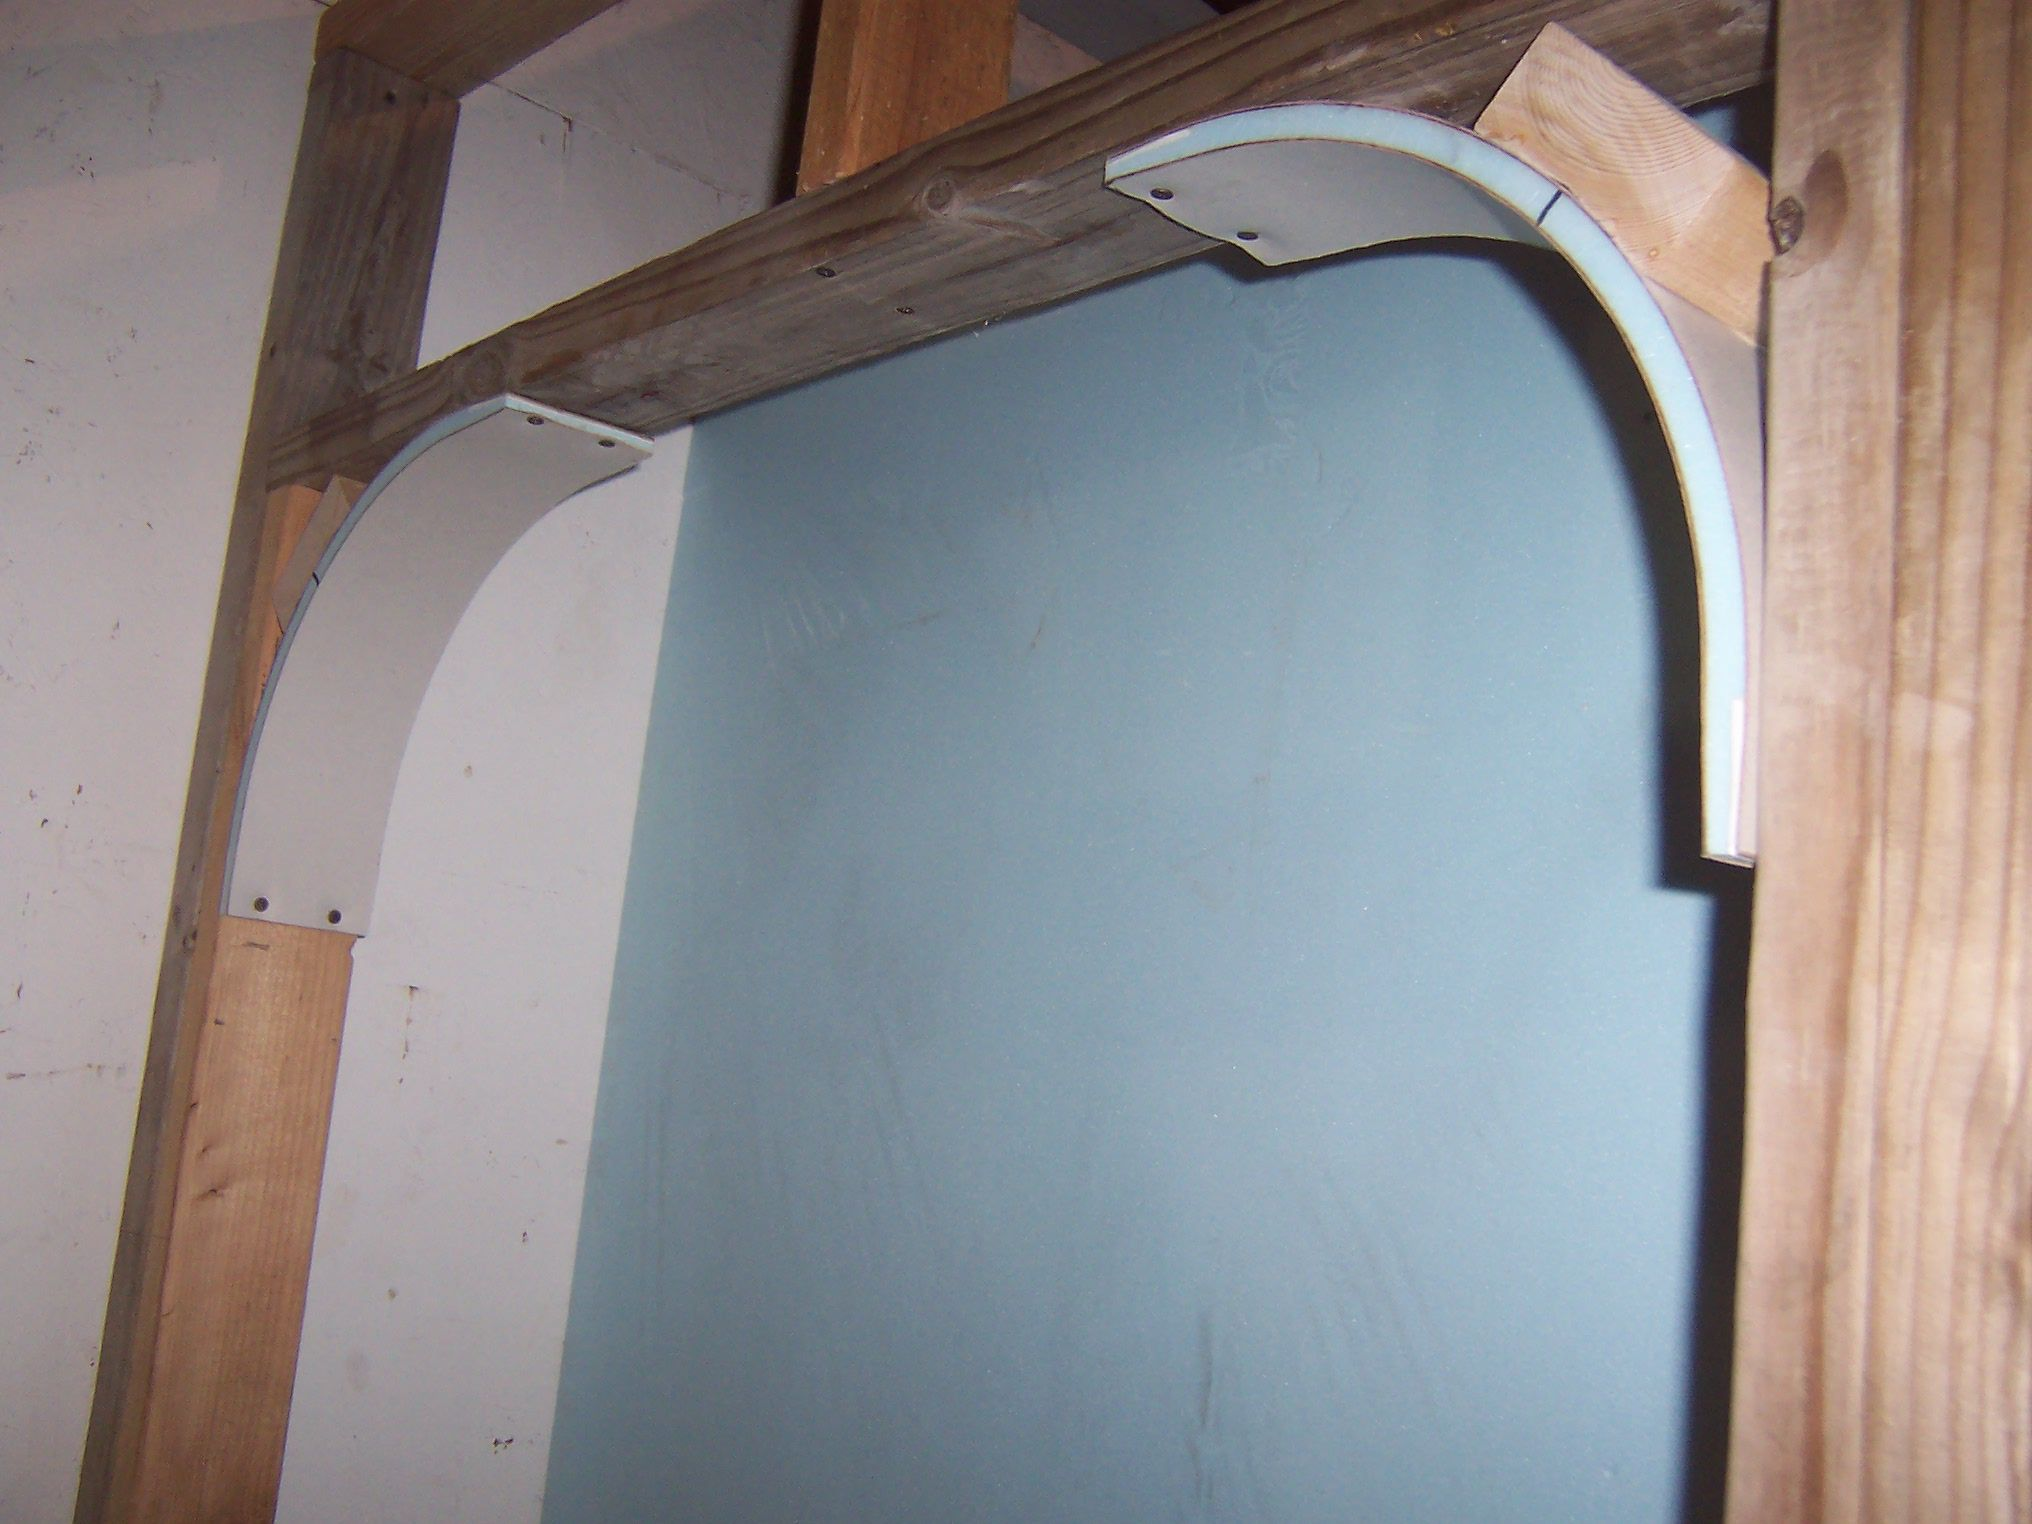 Premade drywall arches Simplest possible way to create arches